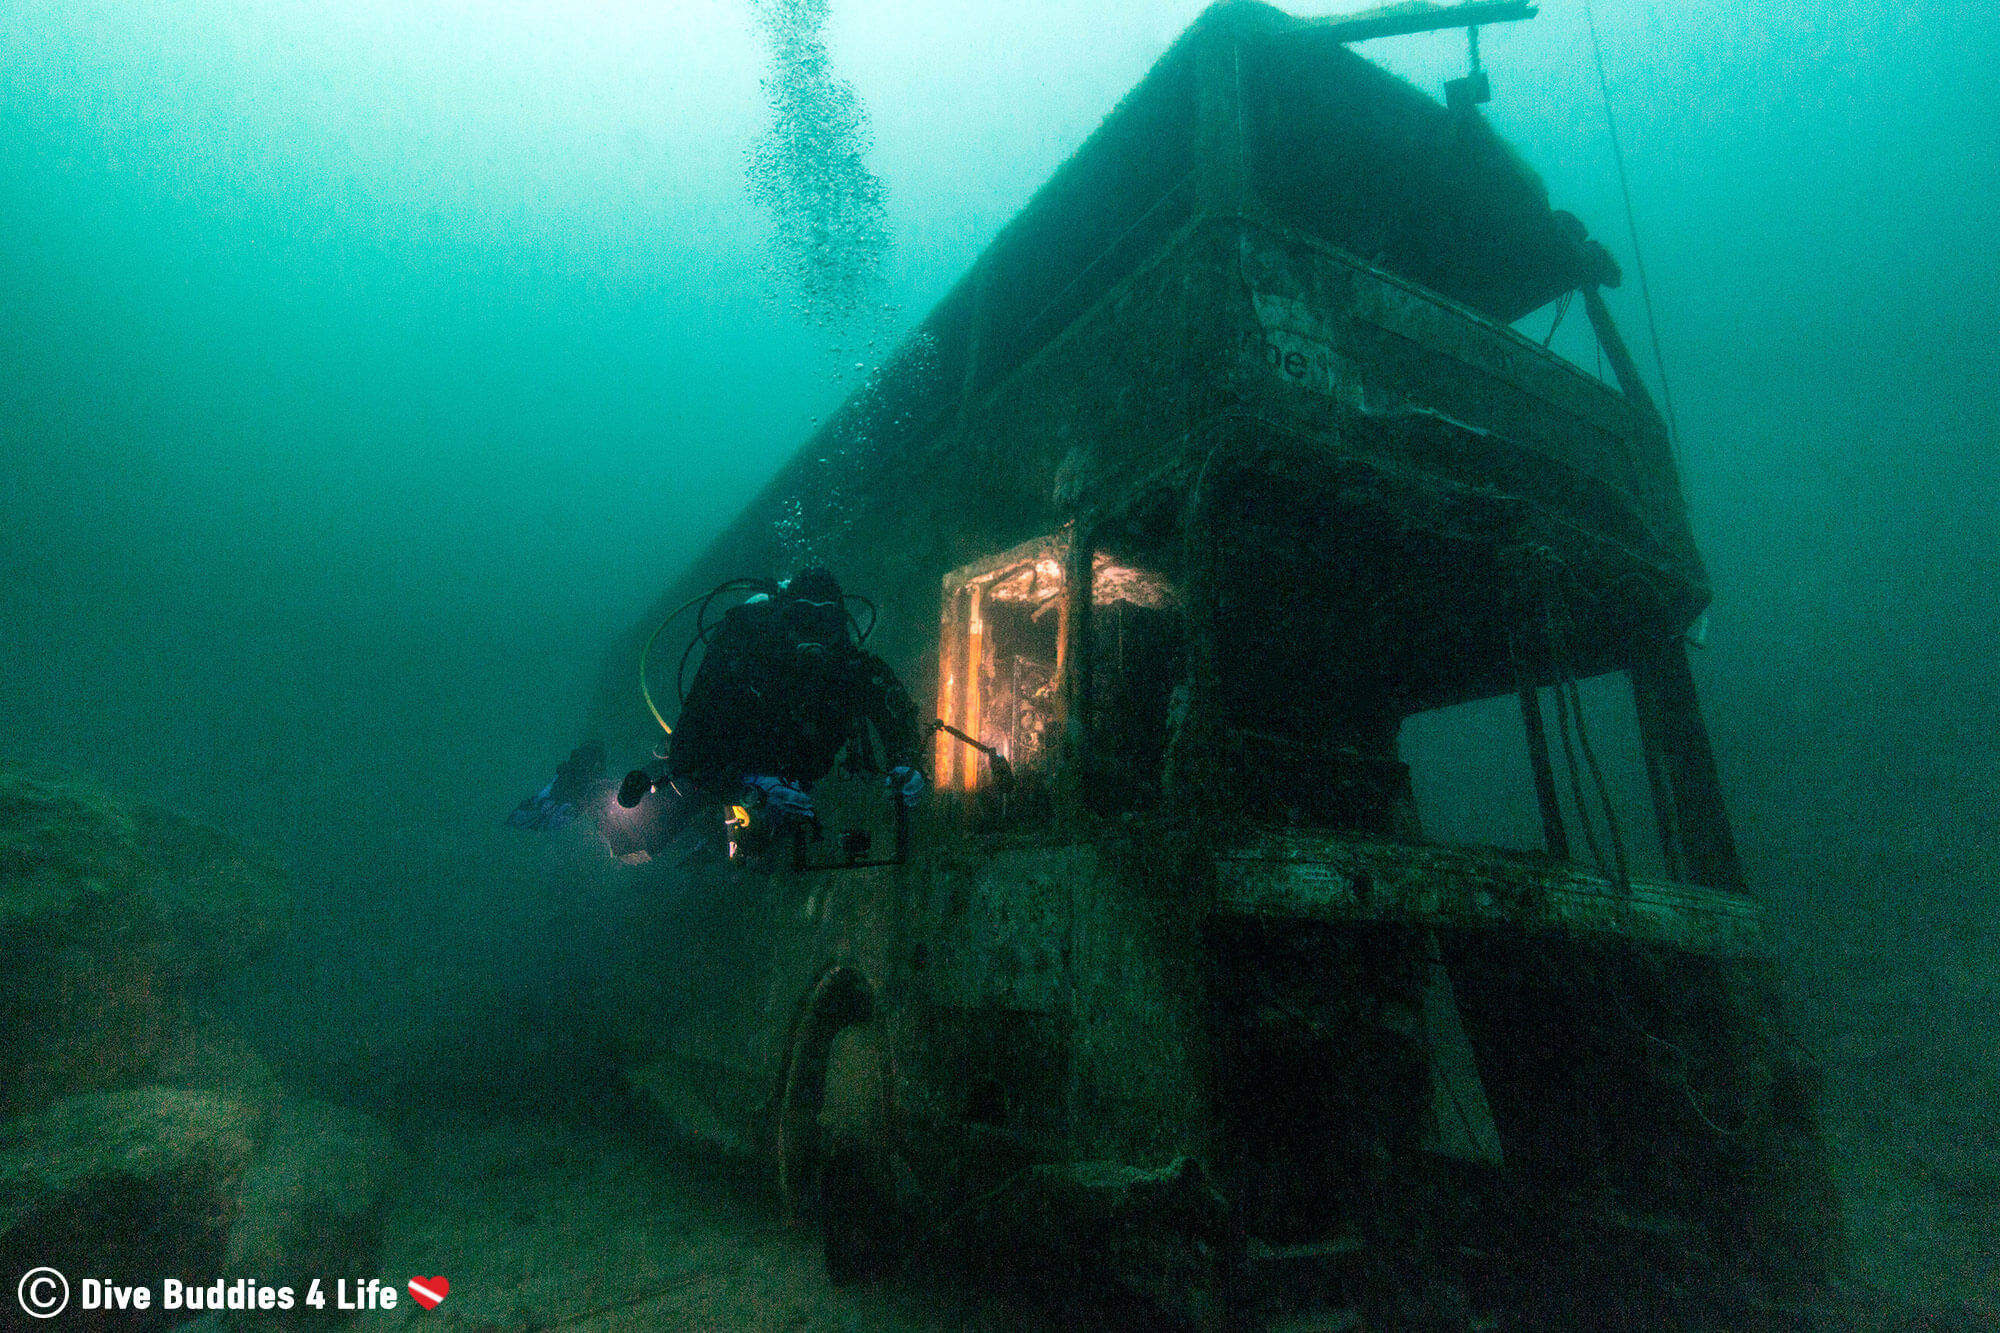 Joey Scuba Diving With A Double Decker Bus In A Freshwater Quarry In Chepstow, Wales, UK